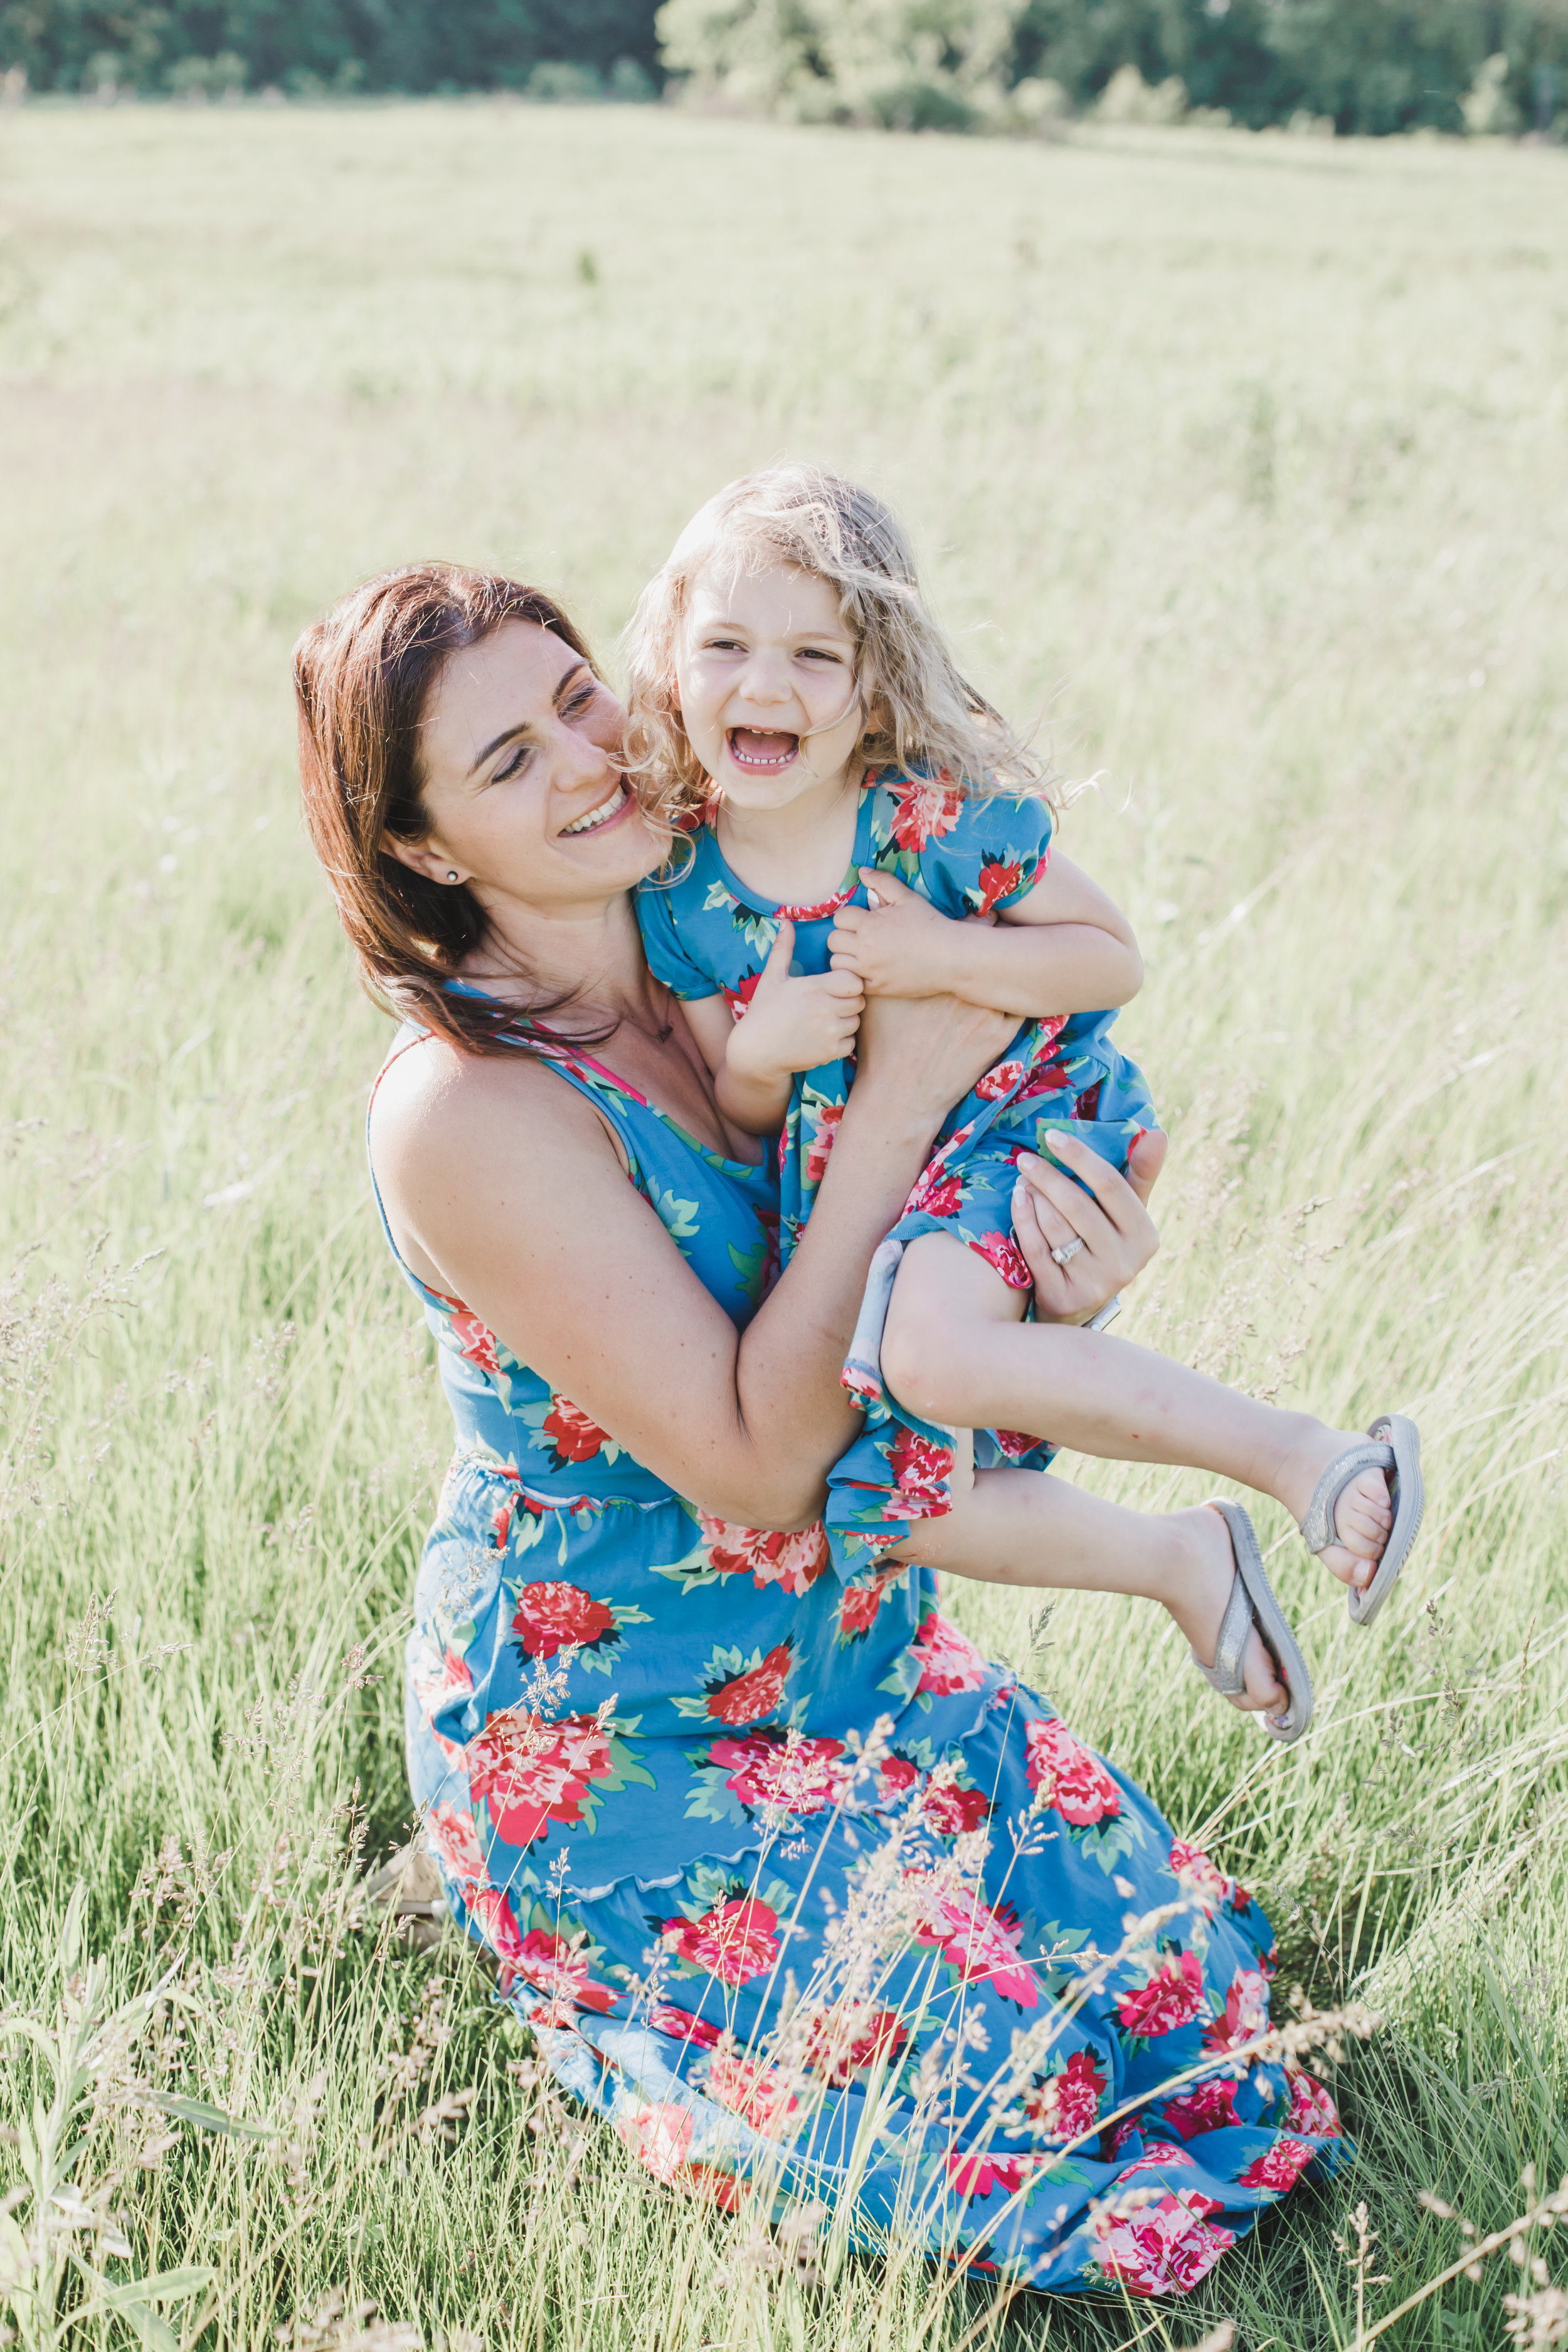 """""""We loved having Rachael do our family photos! She was amazing with the 3 kids and capturing us in our daily reality but in a beautiful way! She even brought treats for the kids to keep their attention and it worked!! We will definitely have her do all our family photos!"""" - - Hamm Family"""